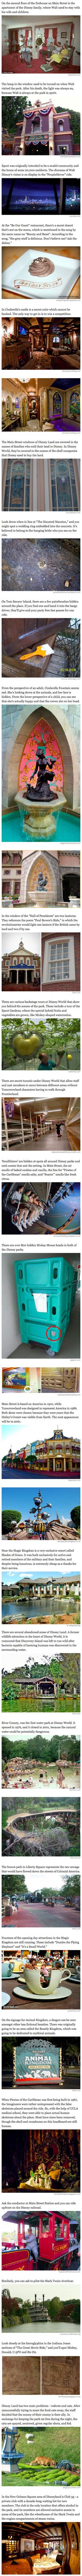 25 secret things most people dont know about Disney parks. The next time that you visit Disney, knowing these secrets will give you an entirely new perspective.